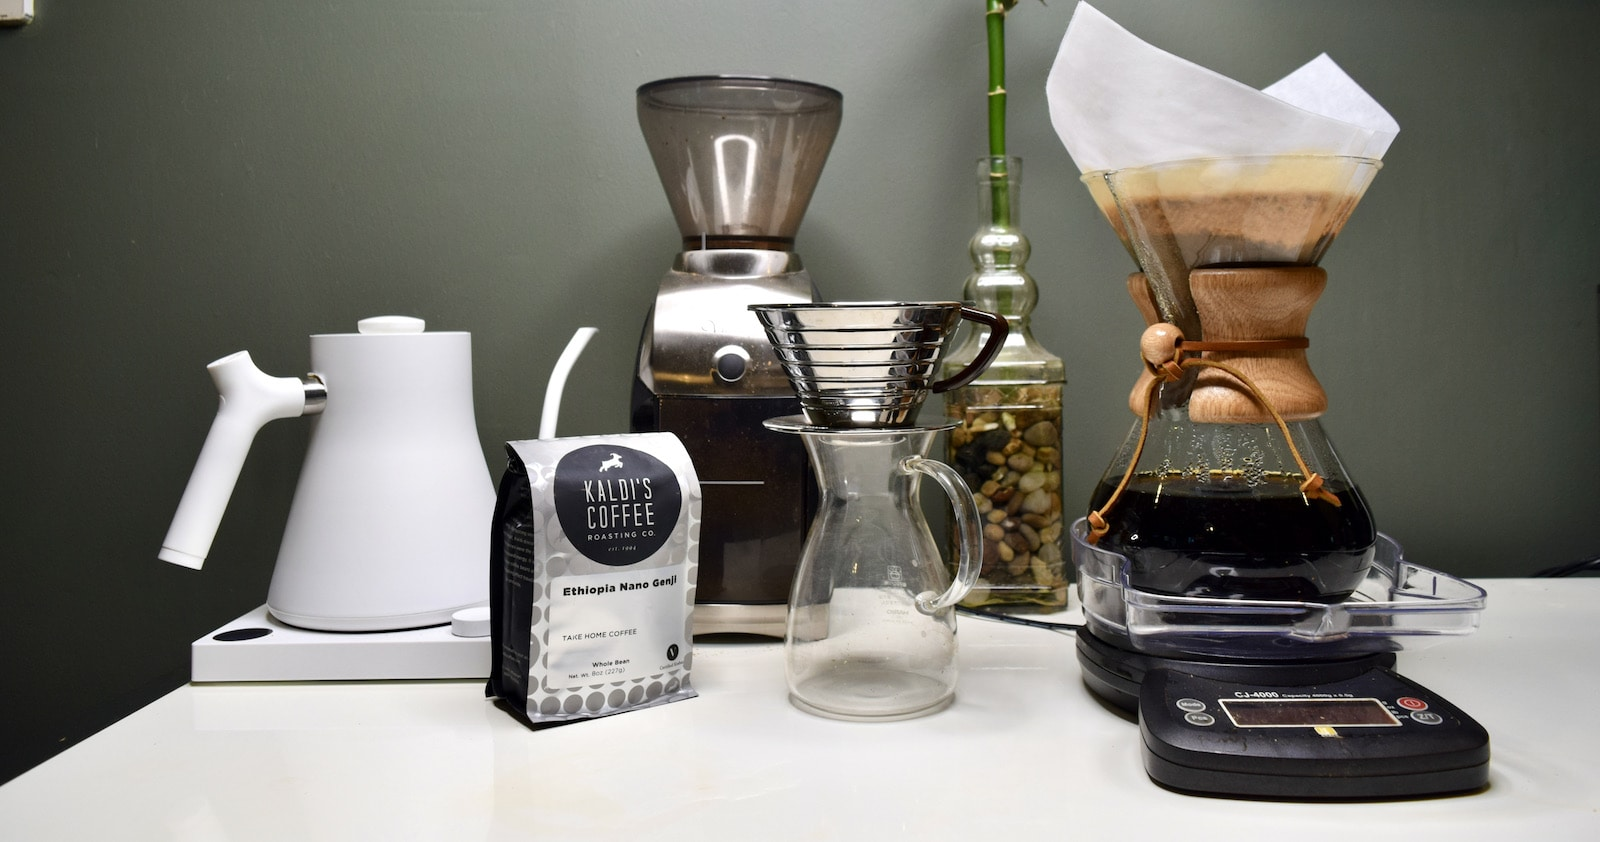 At Home Coffee Brewing Set Up with Chemex, Kalita, Scale, Grinder, and Kettle